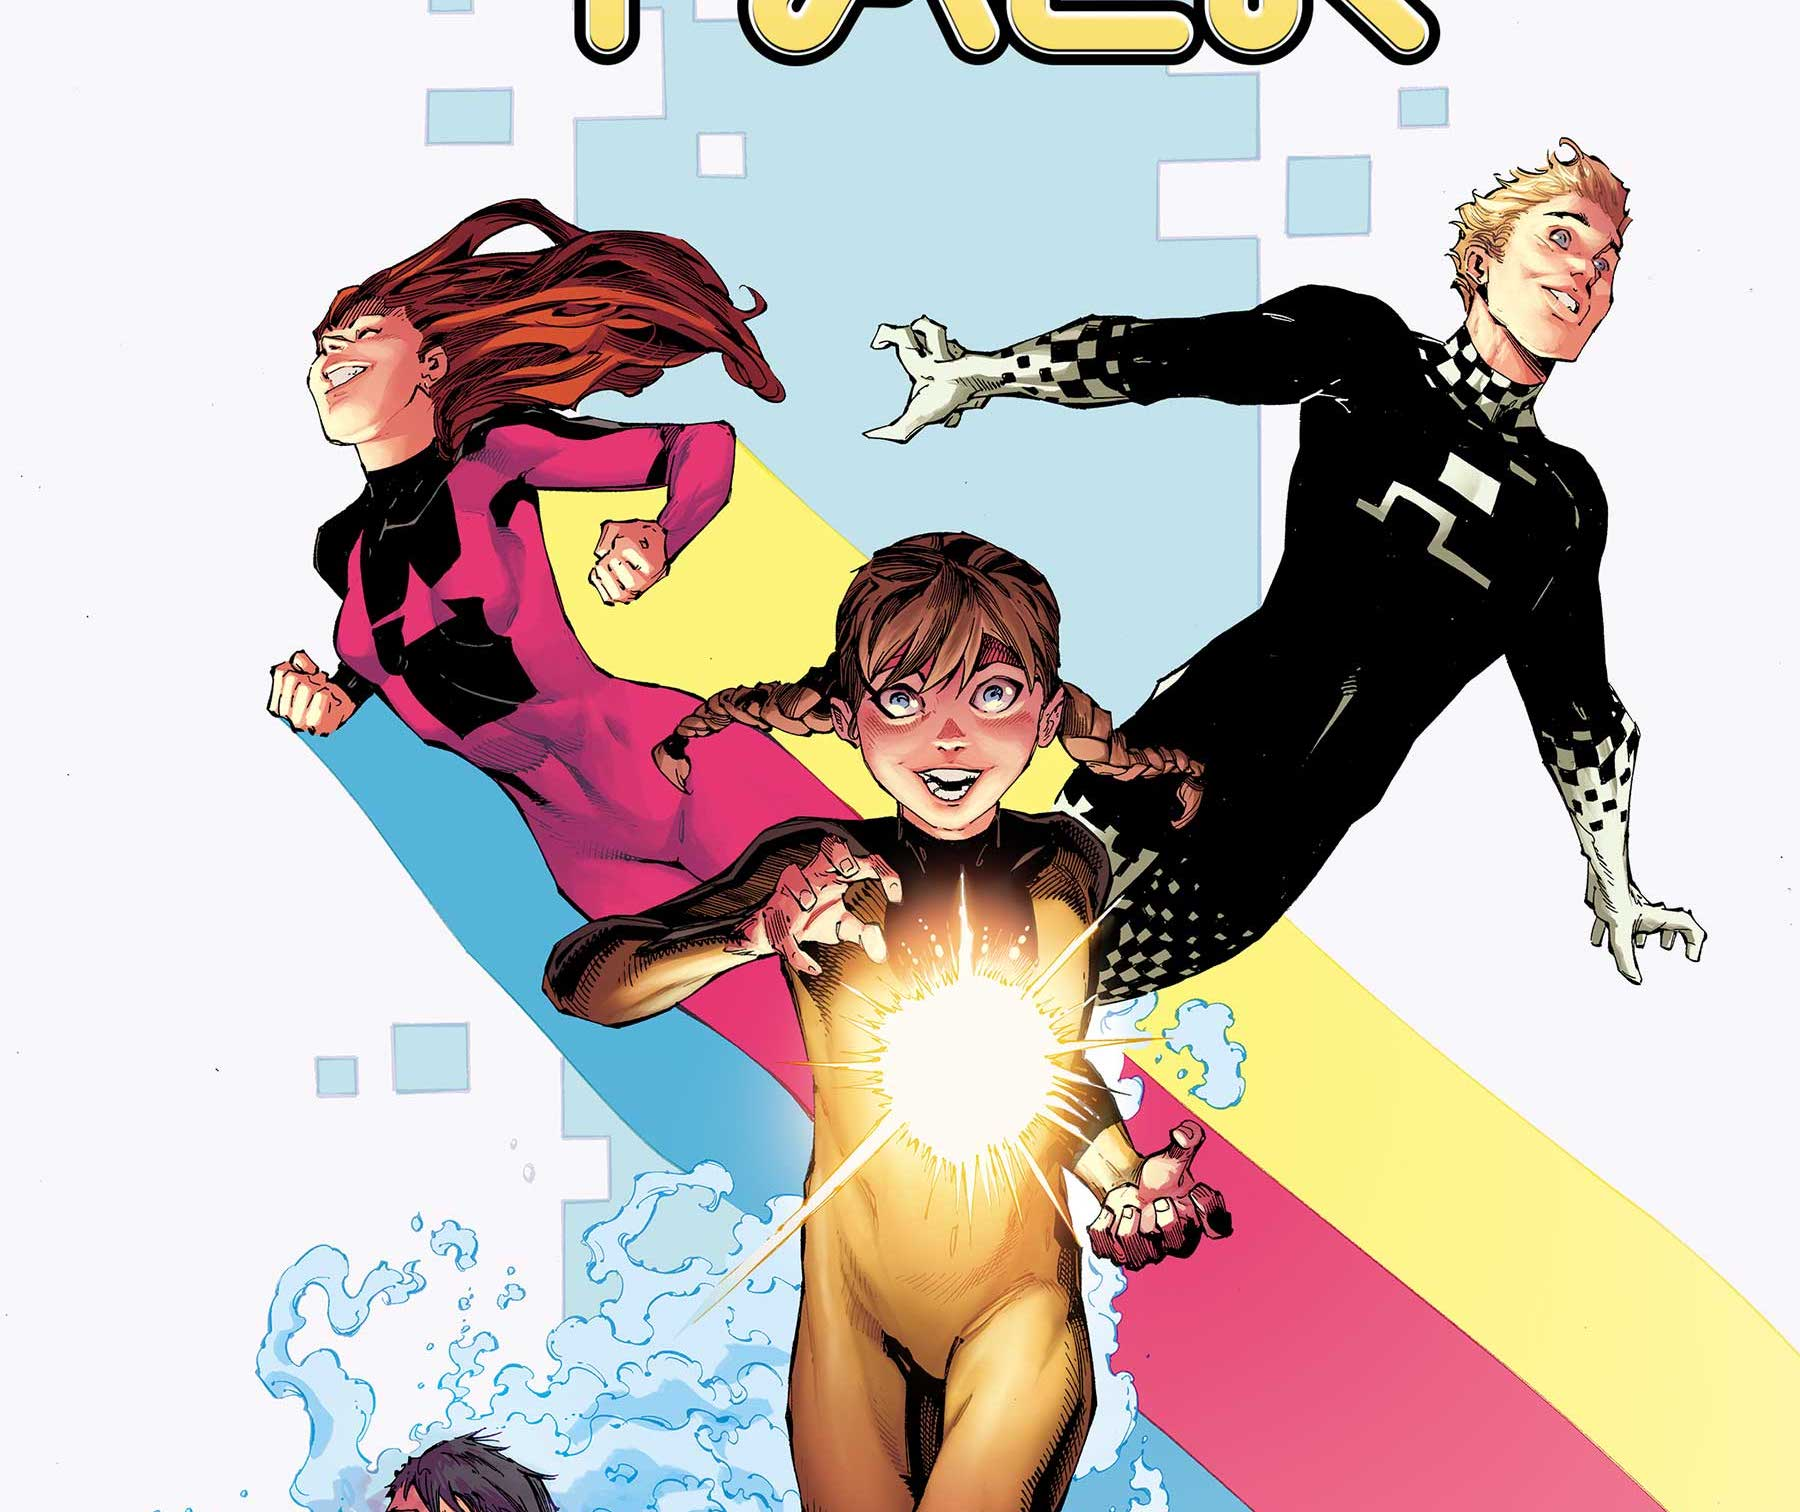 'Power Pack' packing a proper punch post haste November 2020